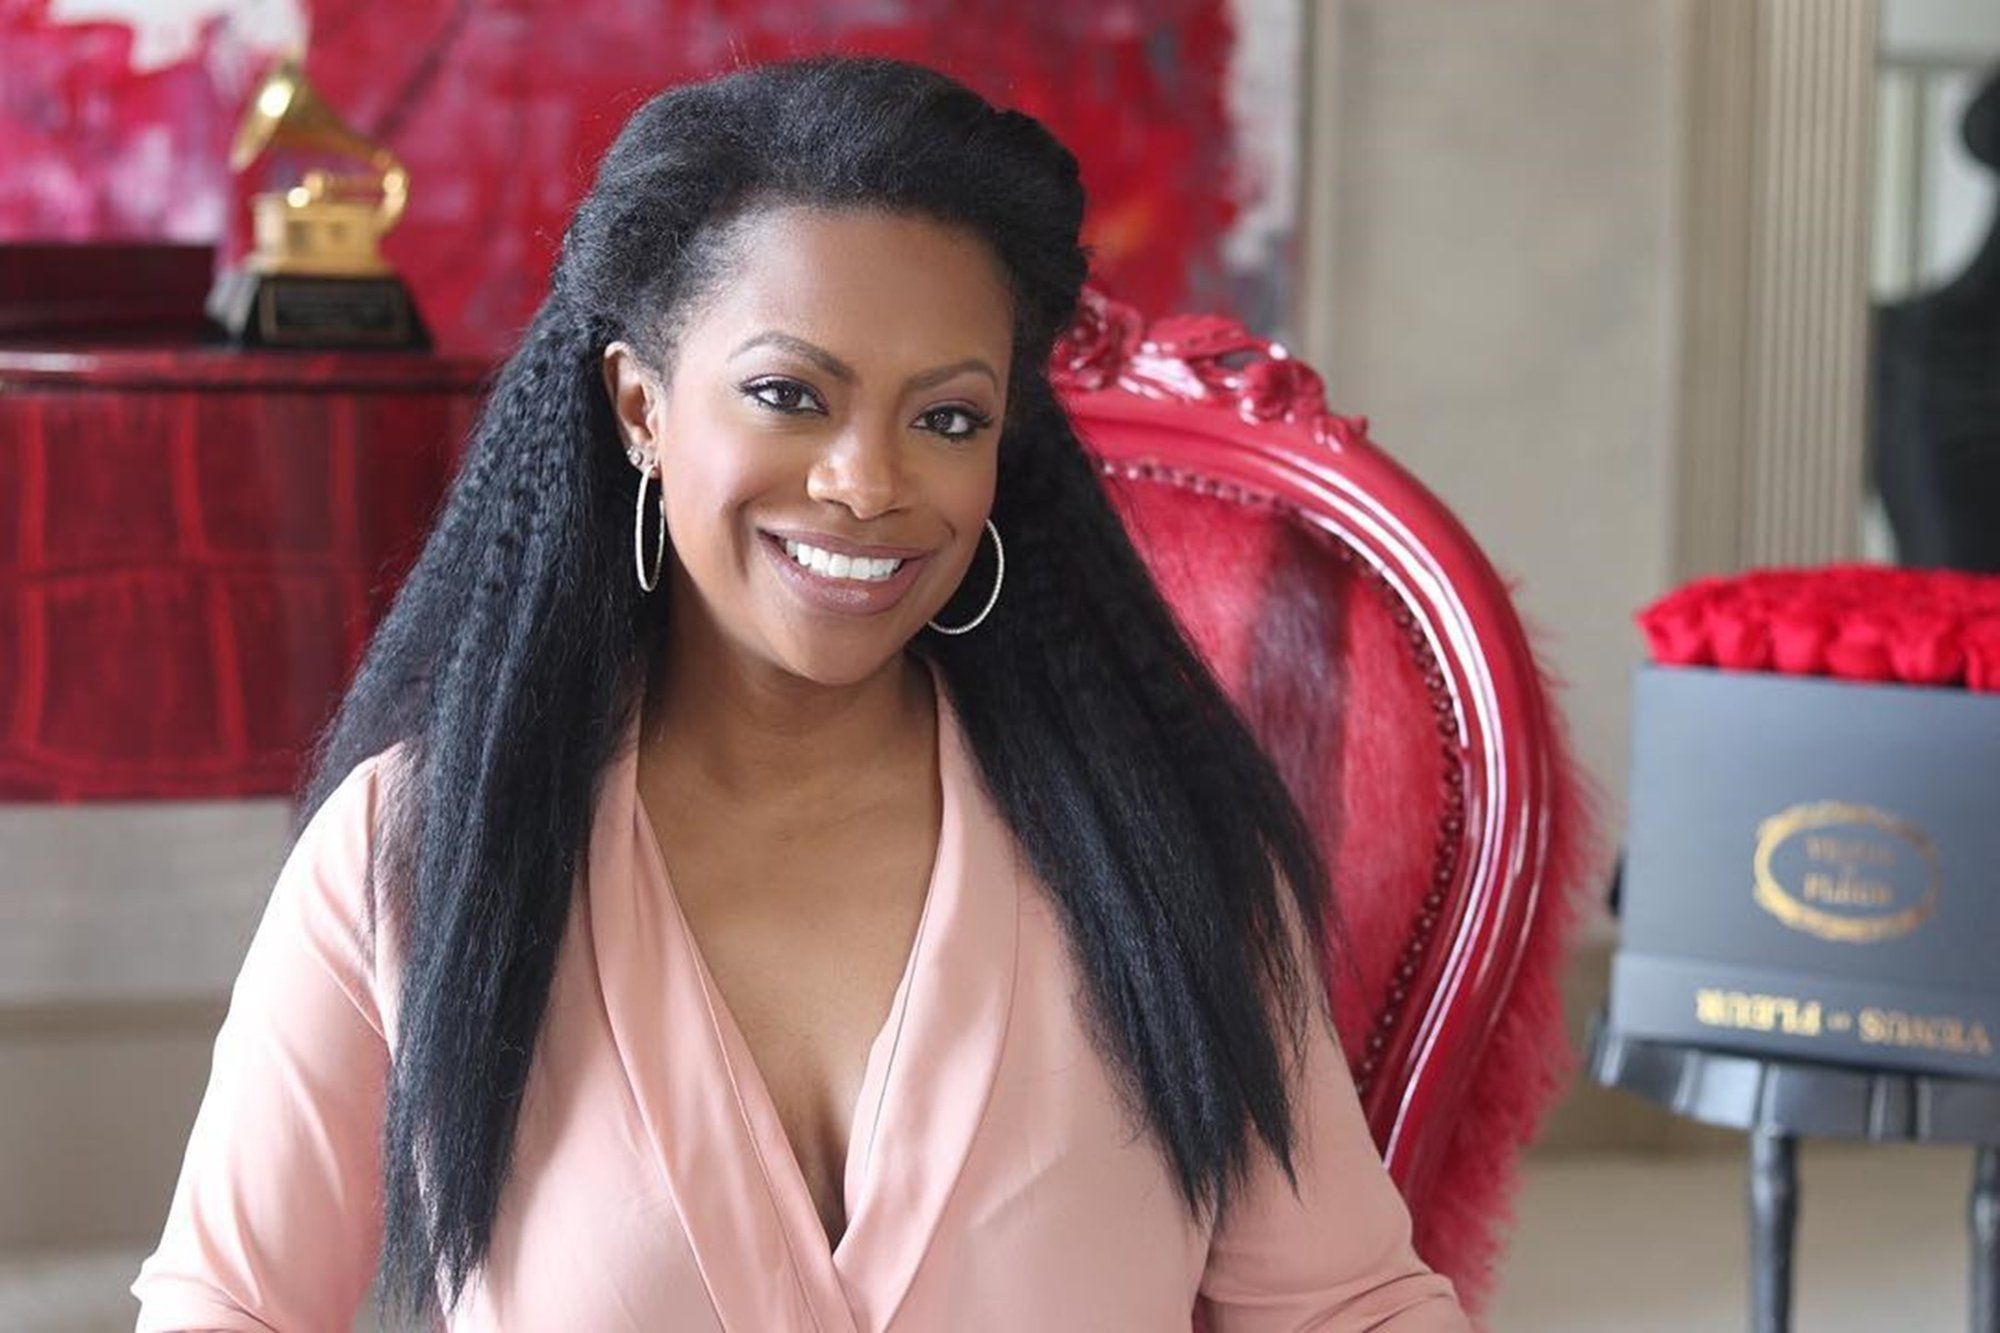 Kandi Burruss Shares Pics With Her Sister - Do They Look Alike Or Not?